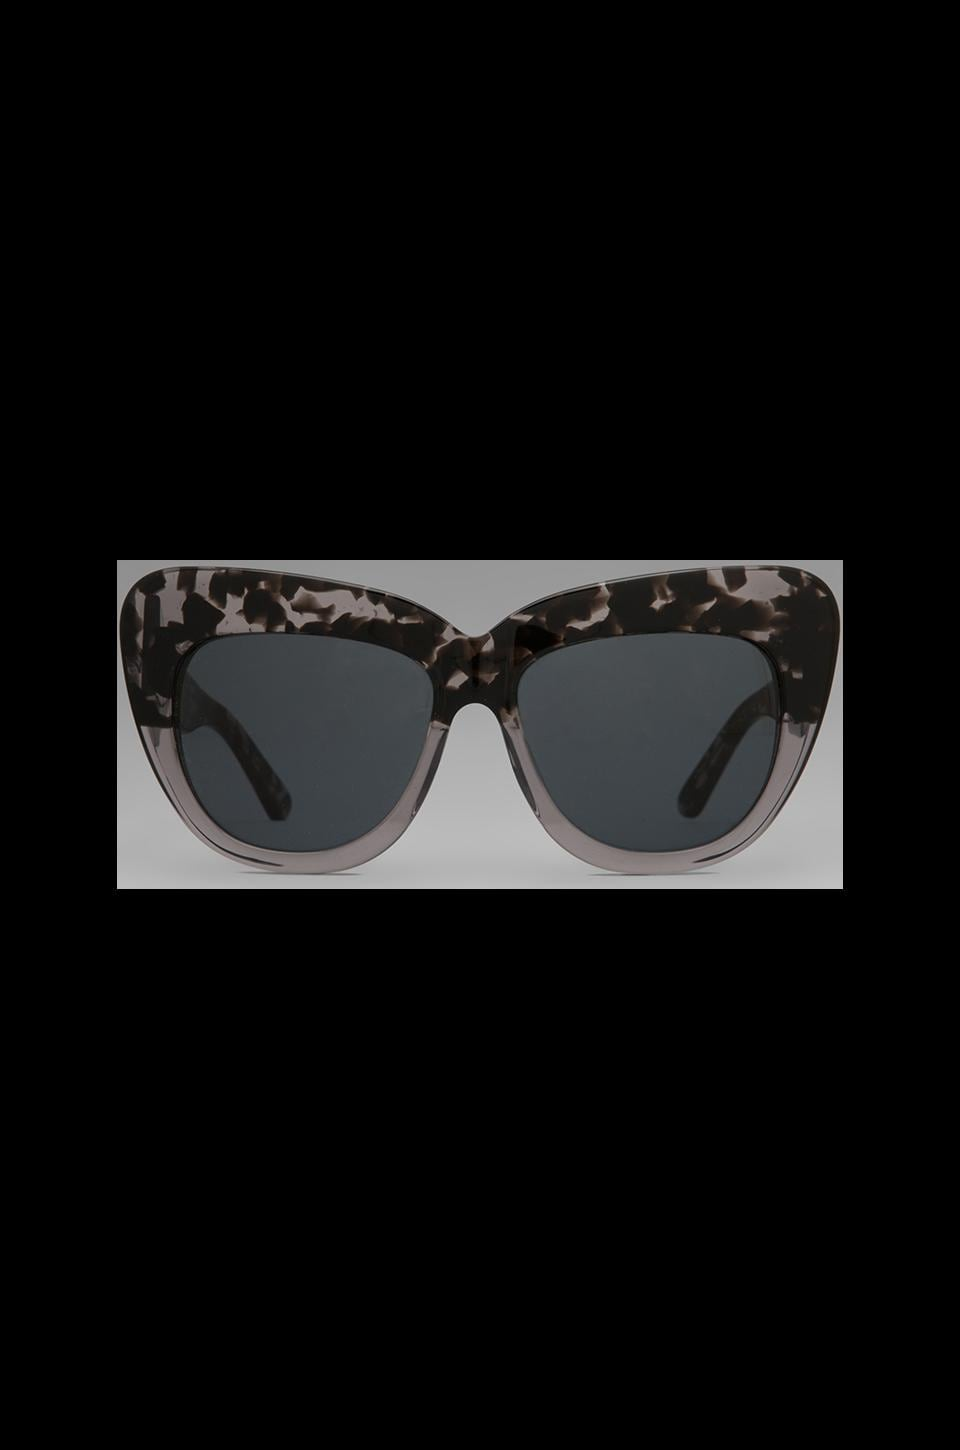 House of Harlow 1960 House of Harlow Chelsea Sunglasses in Grey Tortoise